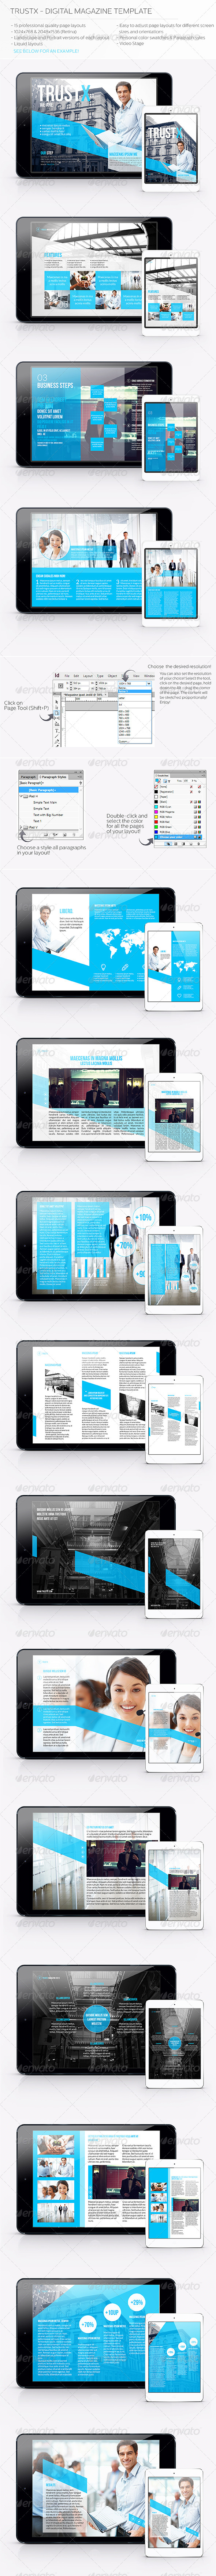 Trustx - Digital Magazine Template - ePublishing